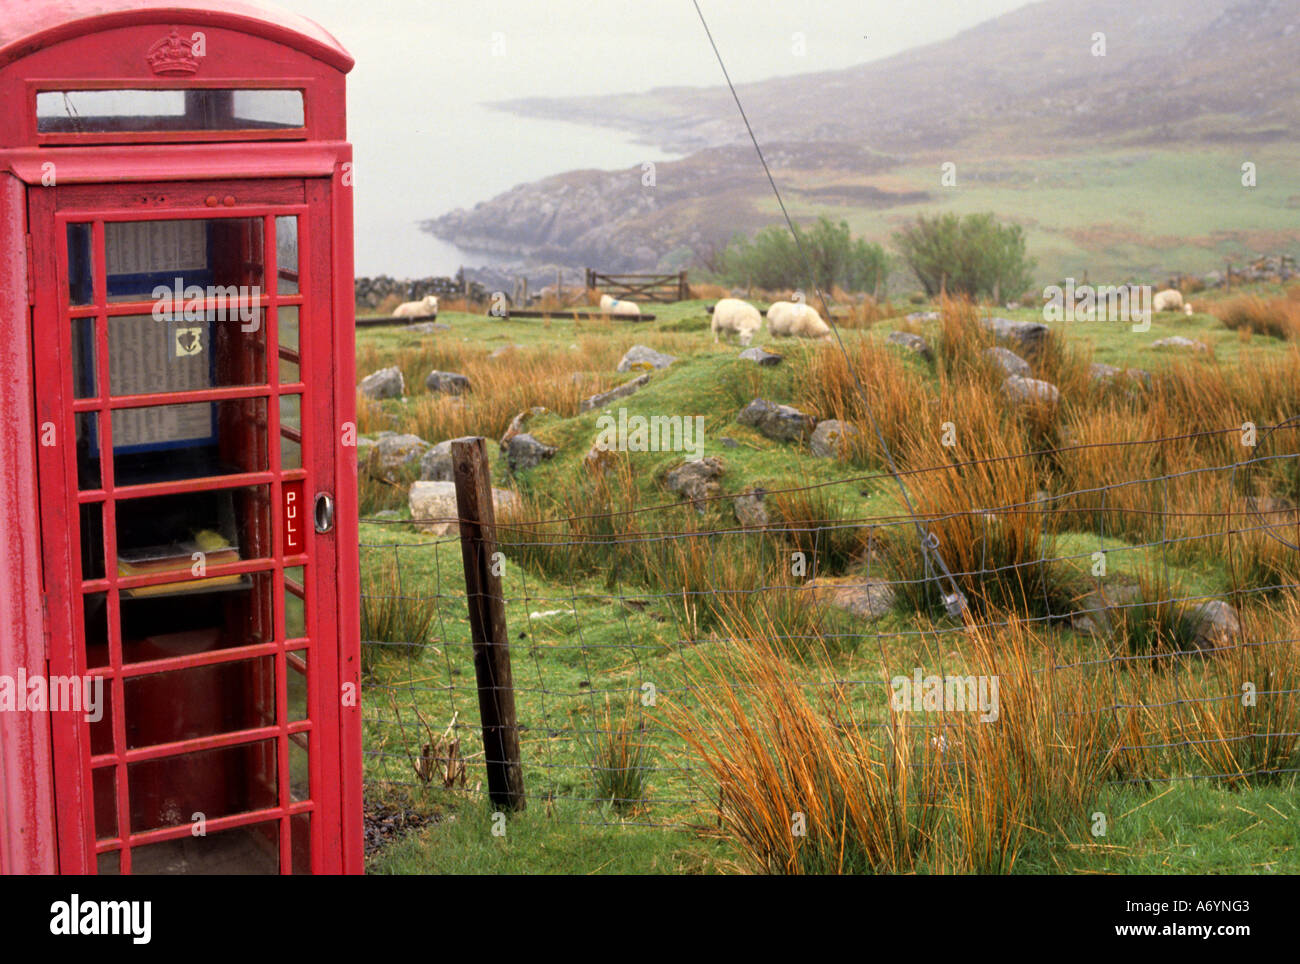 old red booth call box telephone kiosk england - Stock Image